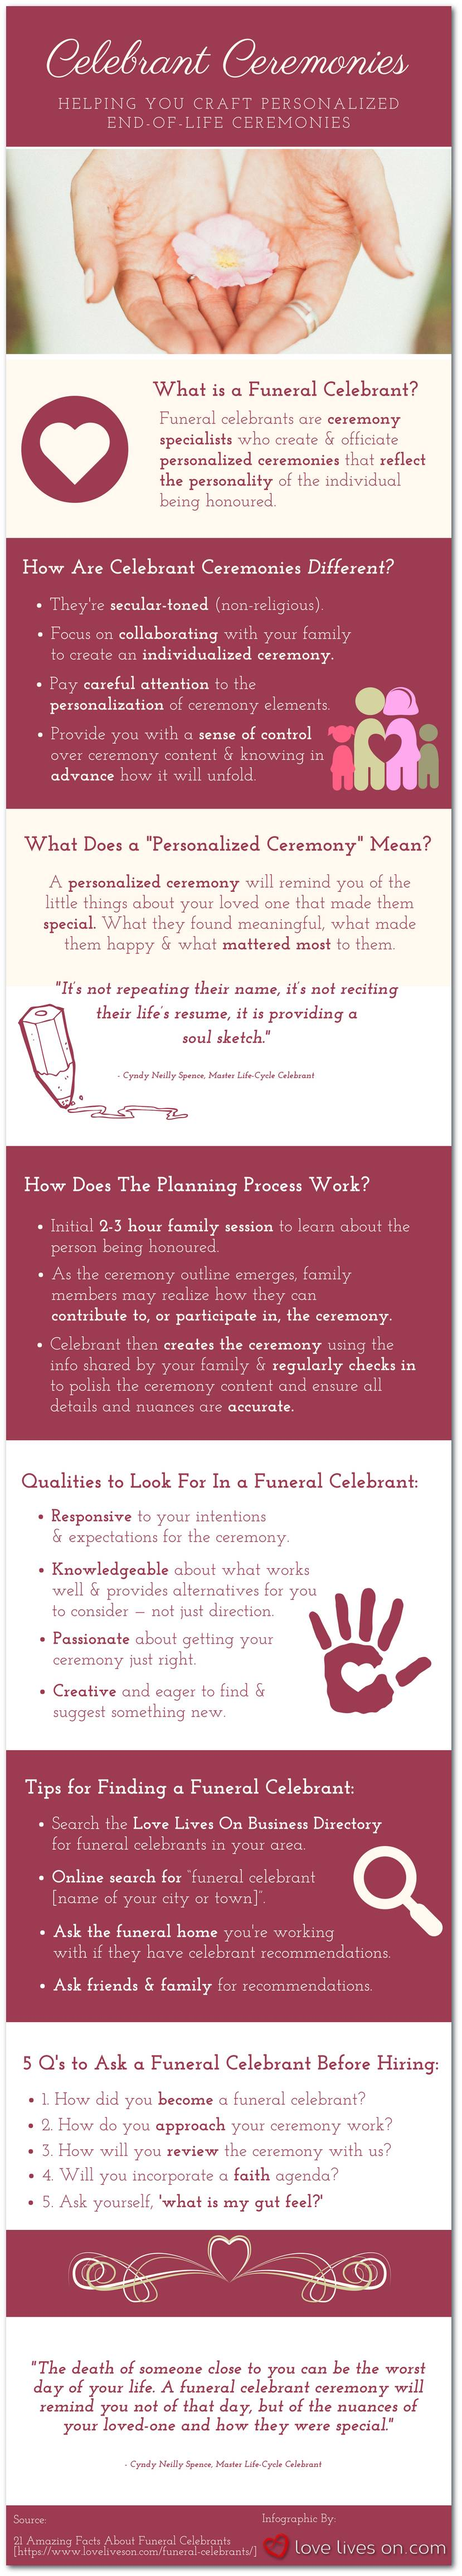 21 amazing facts about funeral celebrants love lives on funeral celebrant ceremonies infographic solutioingenieria Gallery